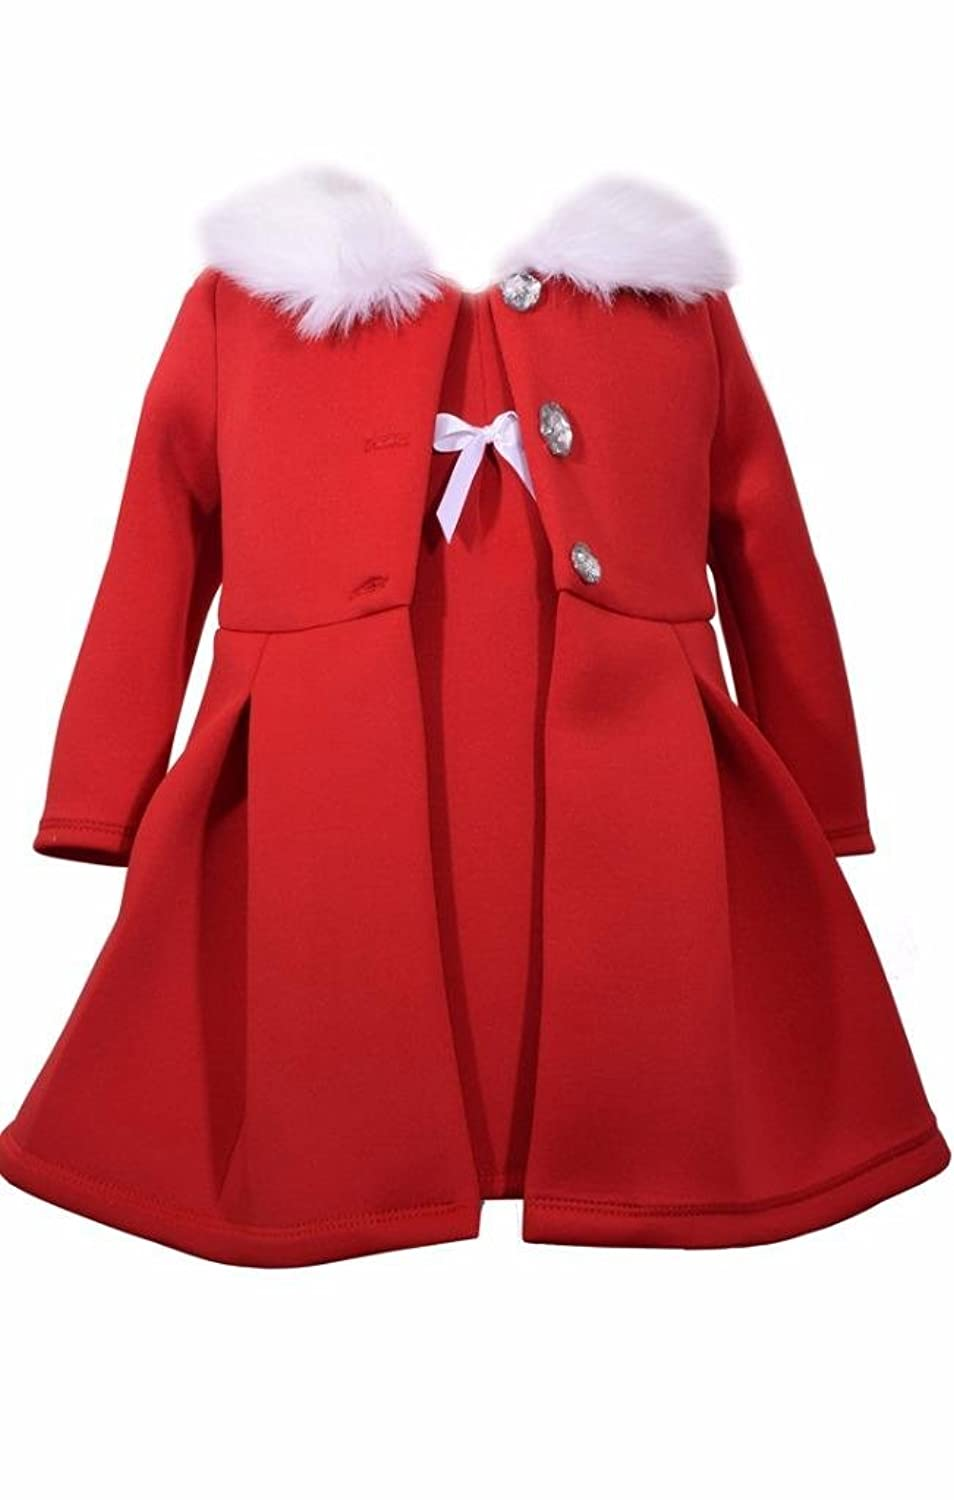 Kids 1950s Clothing & Costumes: Girls, Boys, Toddlers Bonnie Jean 2 Pc Christmas Dress Coat Set Red Faux Fur Trimming $42.99 AT vintagedancer.com